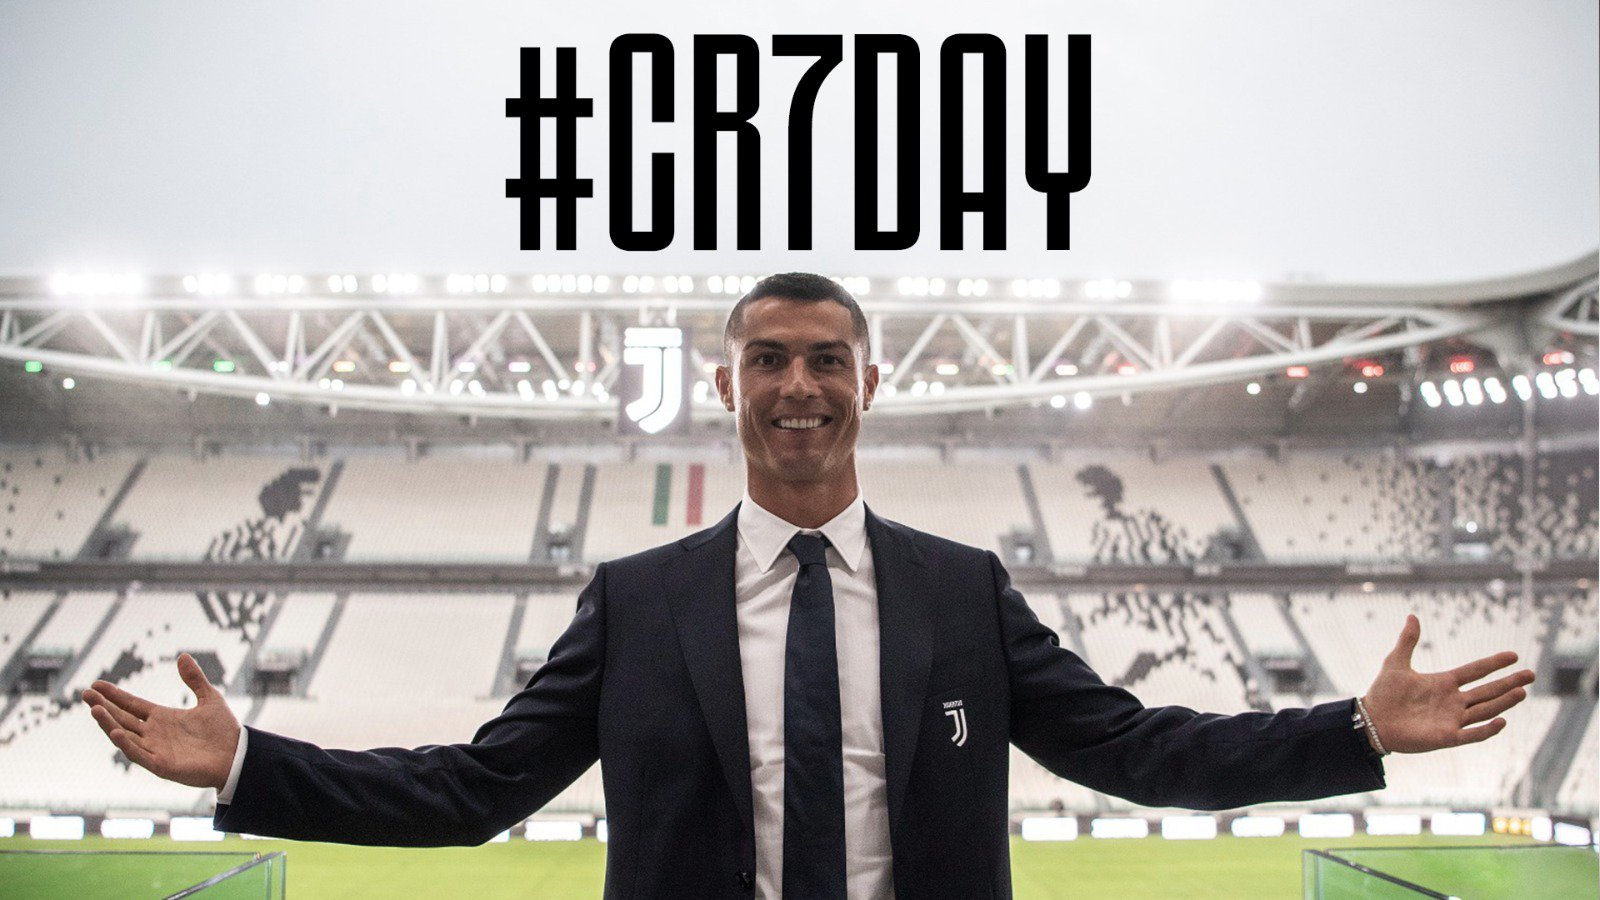 �� MUST SEE! Go behind the scenes on #CR7DAY!  ���� @cristiano #CR7JUVE https://t.co/SLIbYK8K7Y